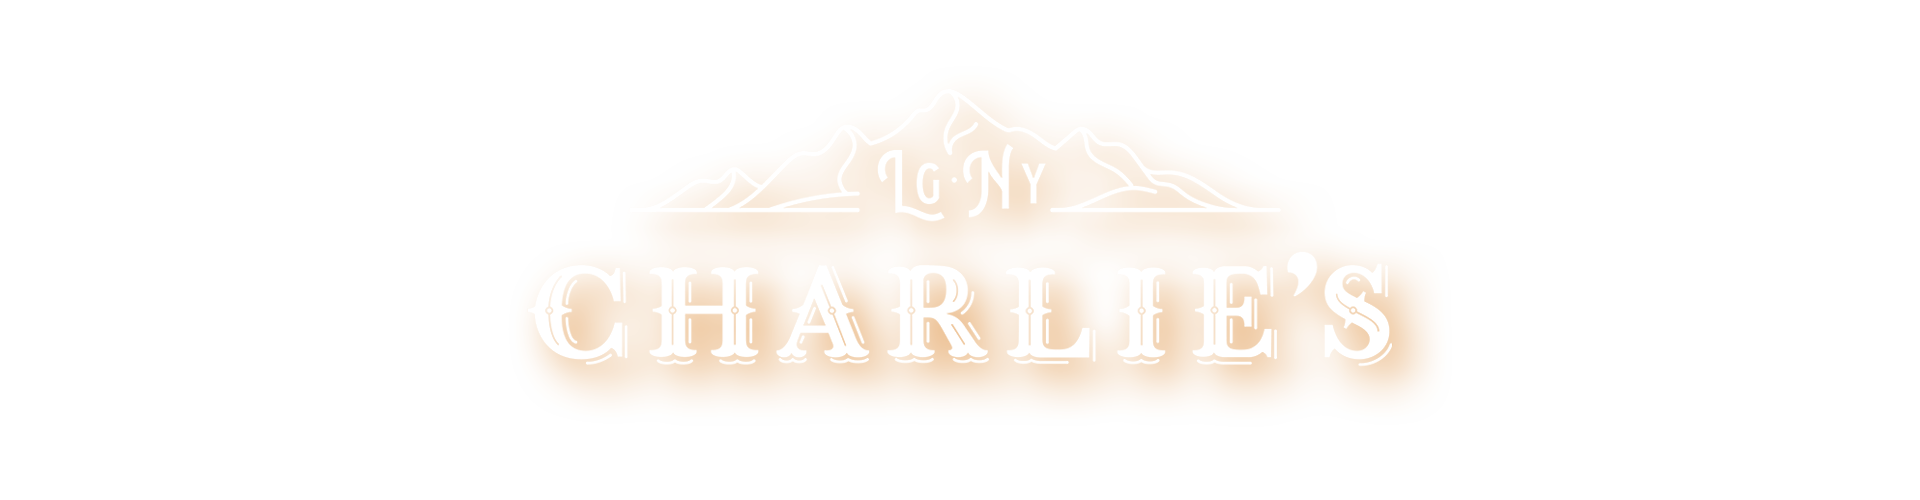 Charlies_Header_Backgrounds2.png